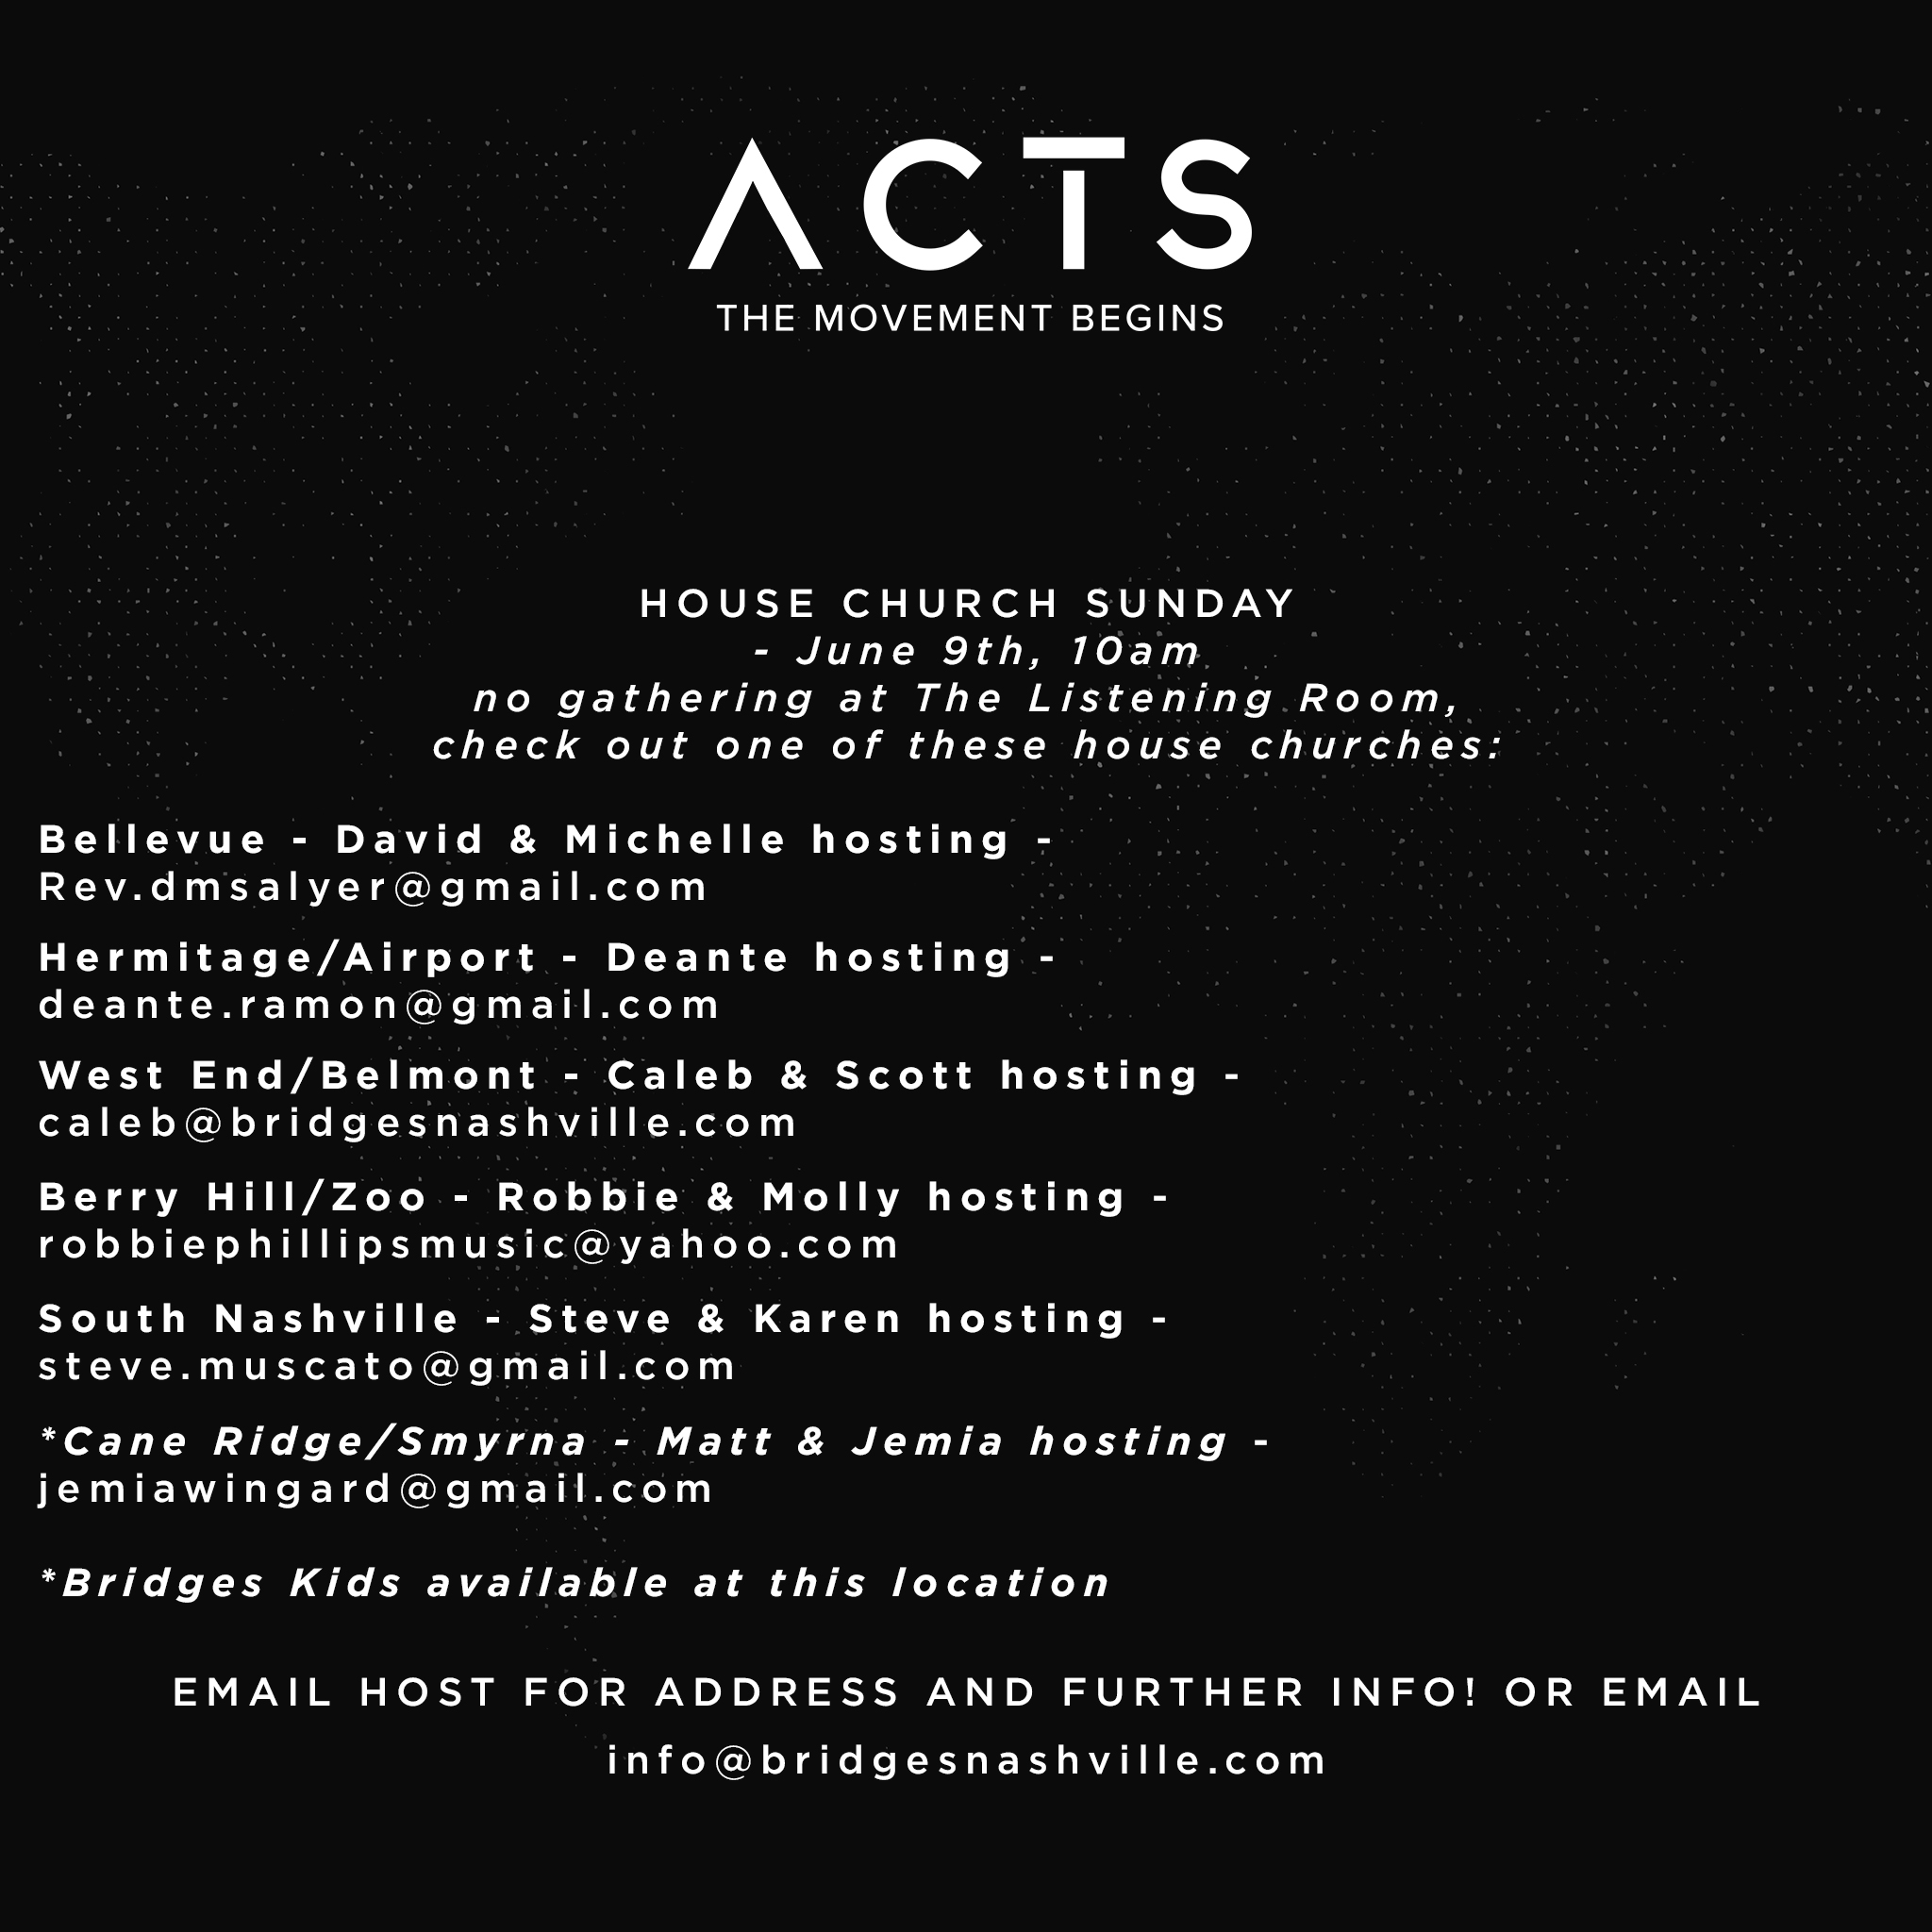 Acts Artwork_house church_instagram square.jpg